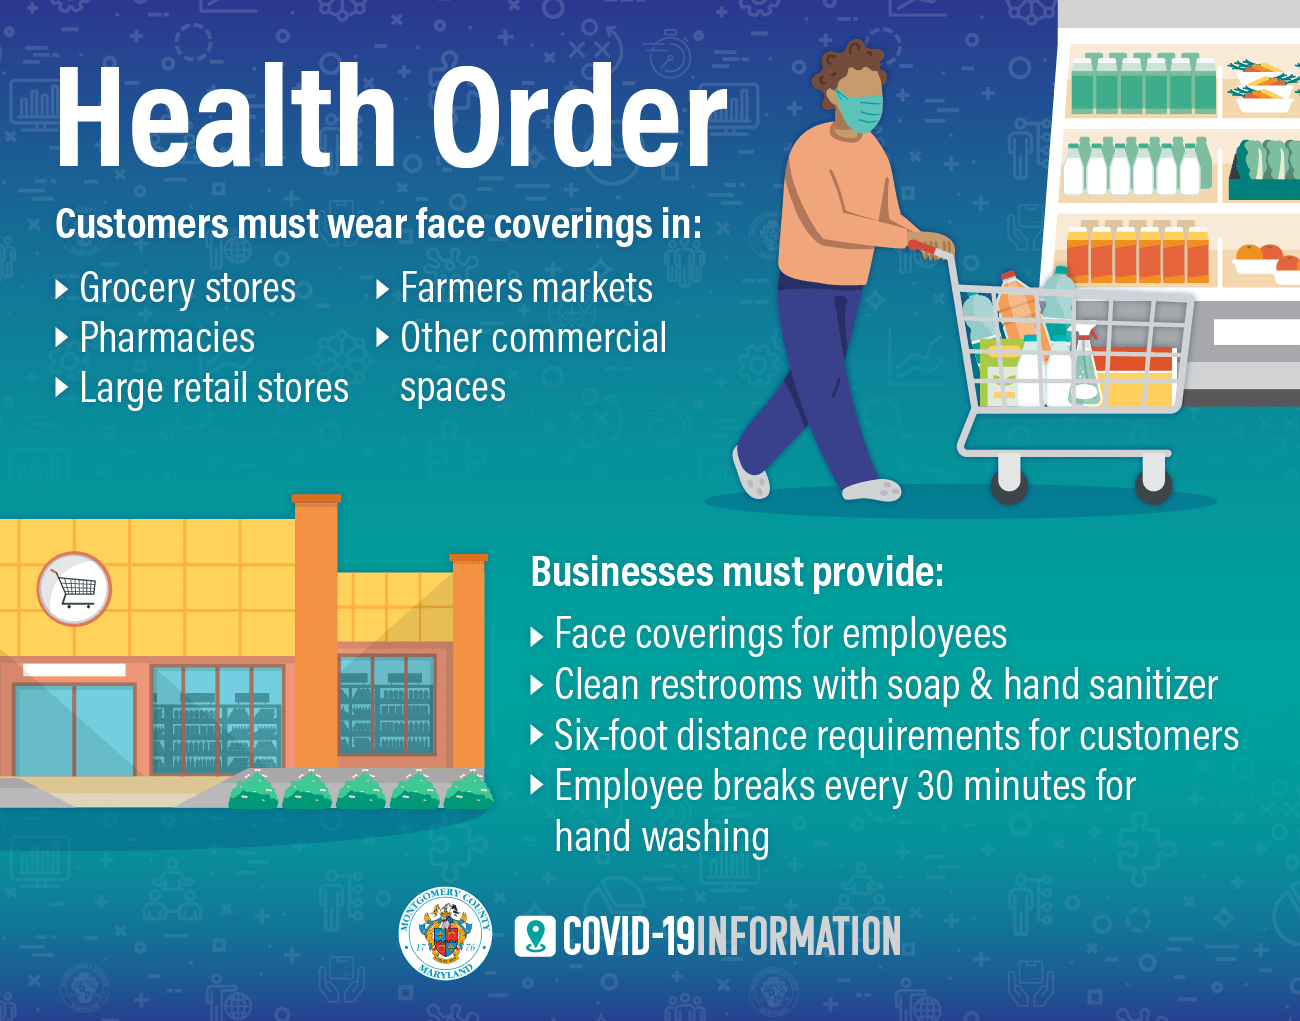 Health Order: Customers must wear face coverings in grocery stores, pharmacies, large retail stores, farmers markets, other commercial spaces. Businesses must provide face coverings for employees, clean restrooms with soap and hand sanitizer, six-foot distance requirements for customers, employee breaks every 30 minutes for hand washing.